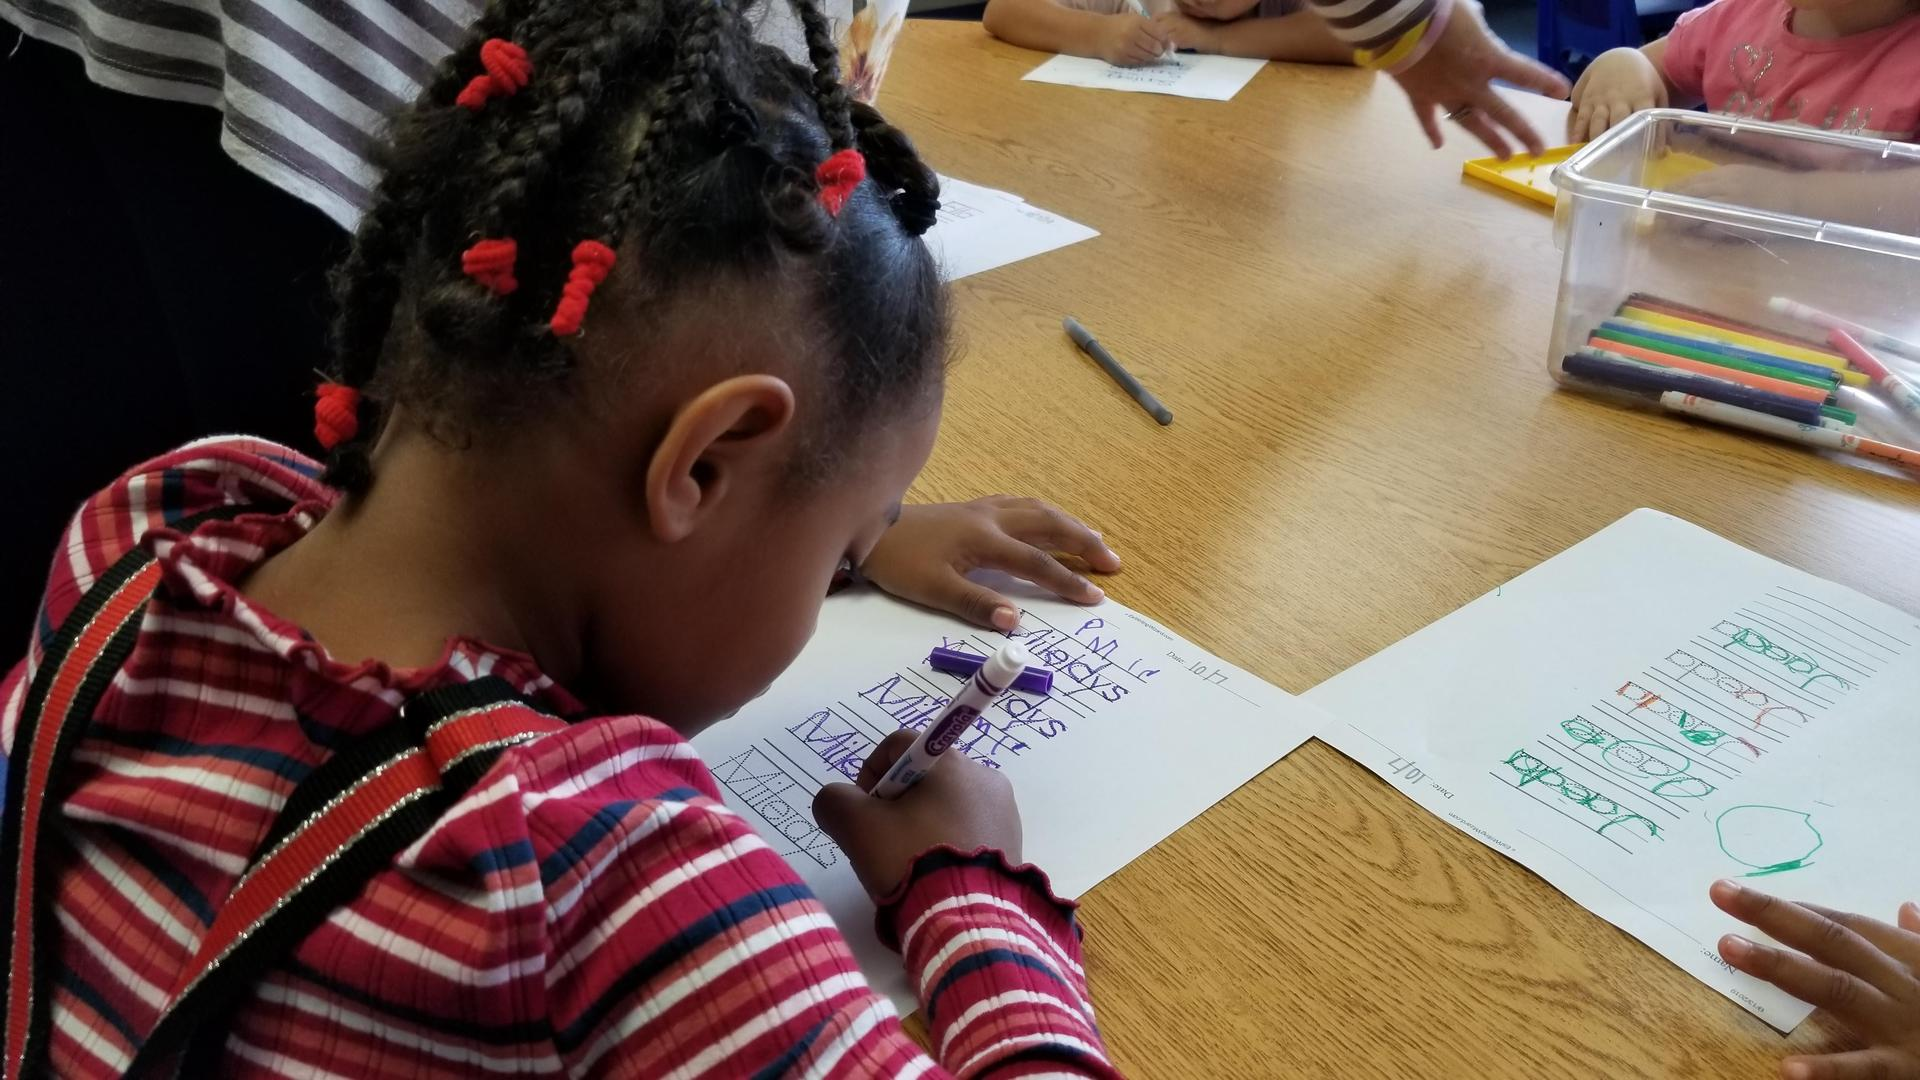 Student learning how to write her name